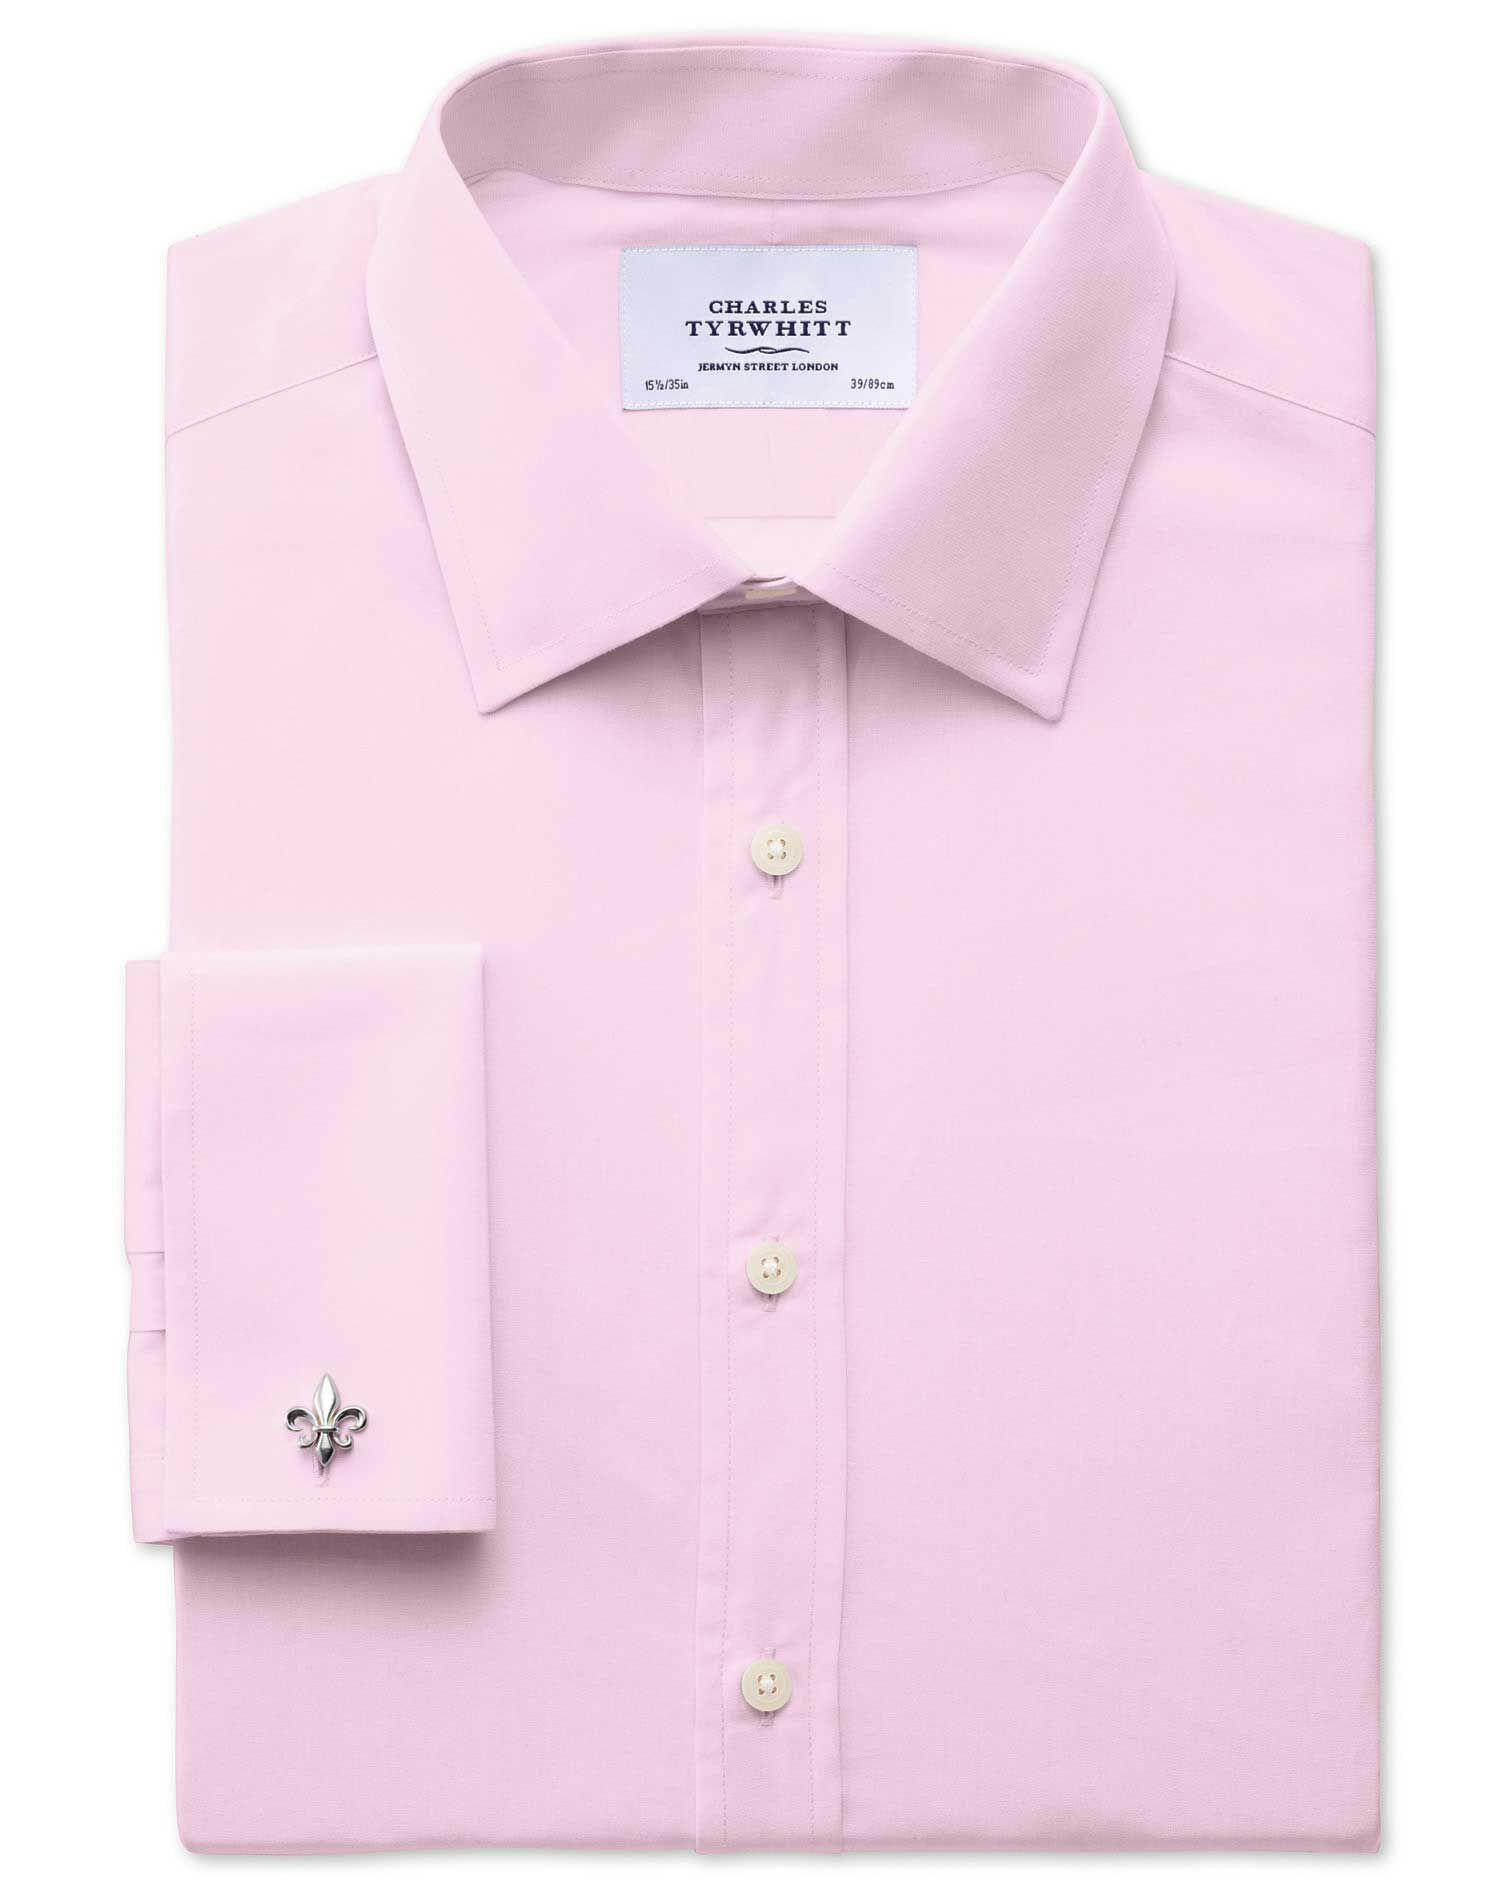 Extra Slim Fit End-On-End Pink Cotton Formal Shirt Double Cuff Size 15.5/34 by Charles Tyrwhitt